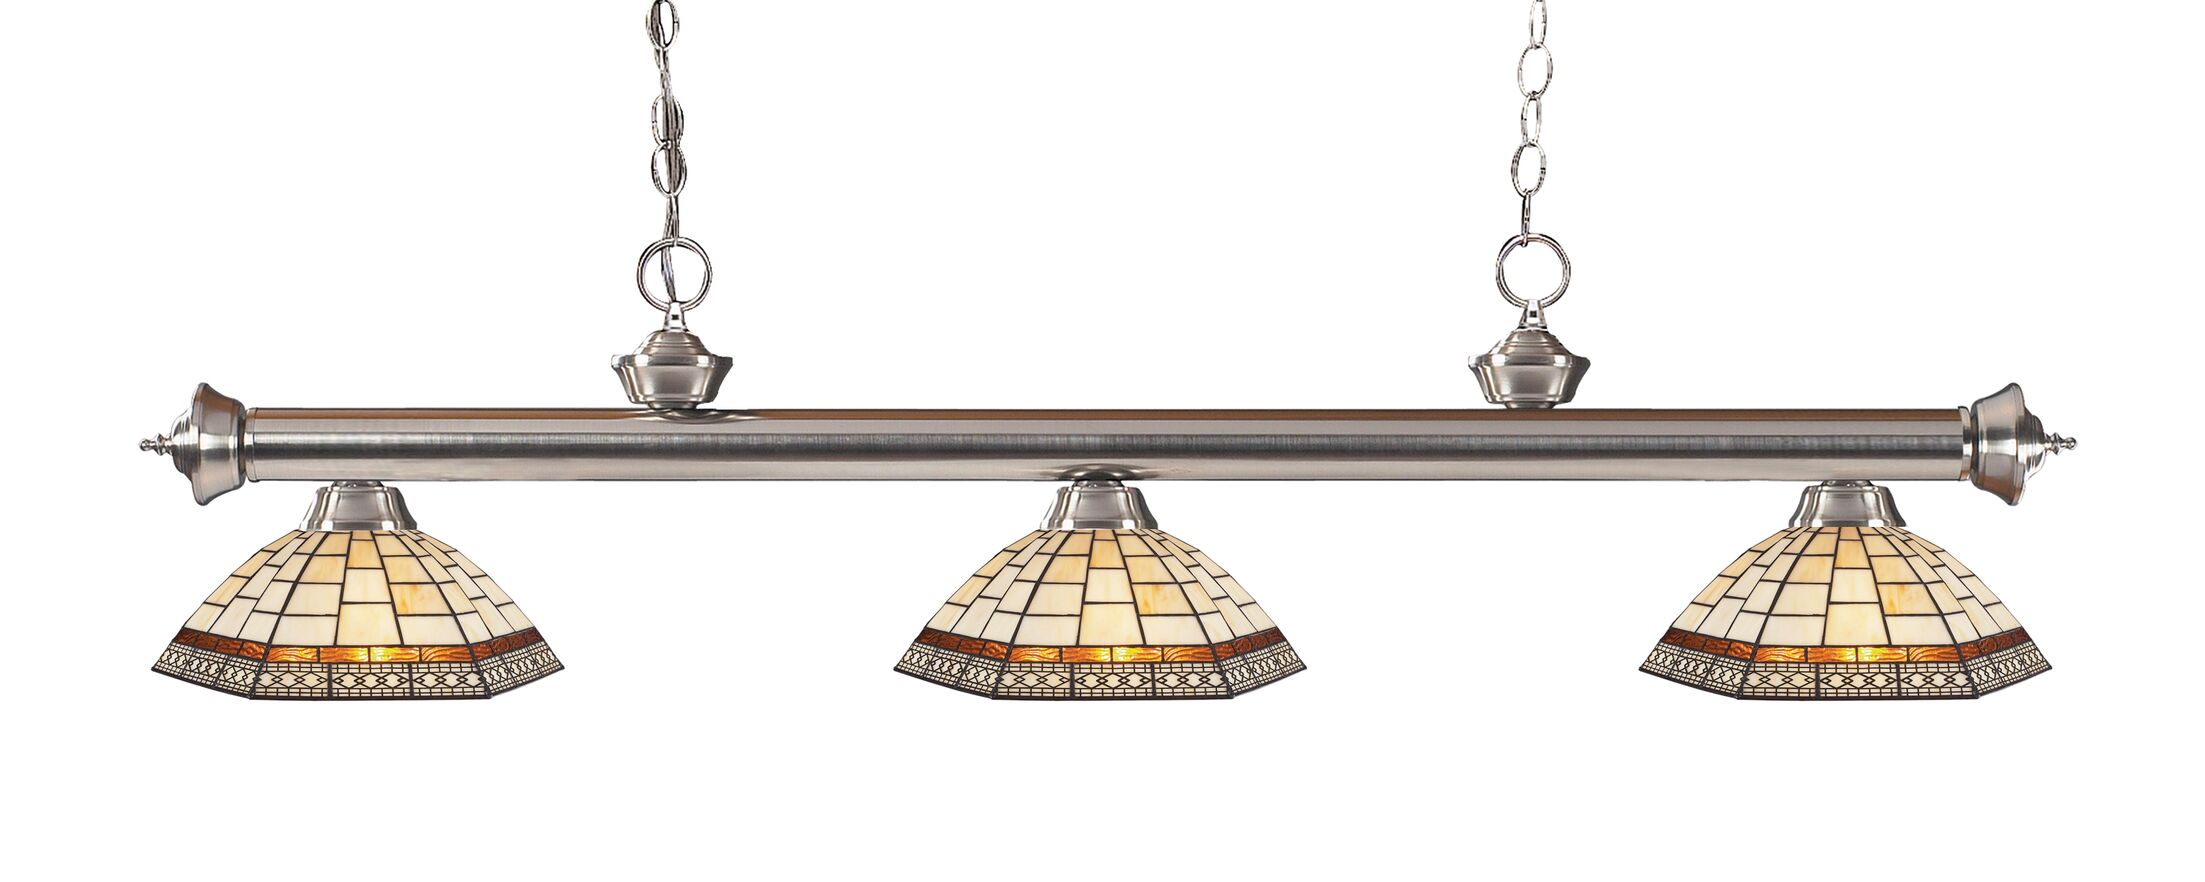 Billington 3-Light Billiard Light Color: Brushed Nickel